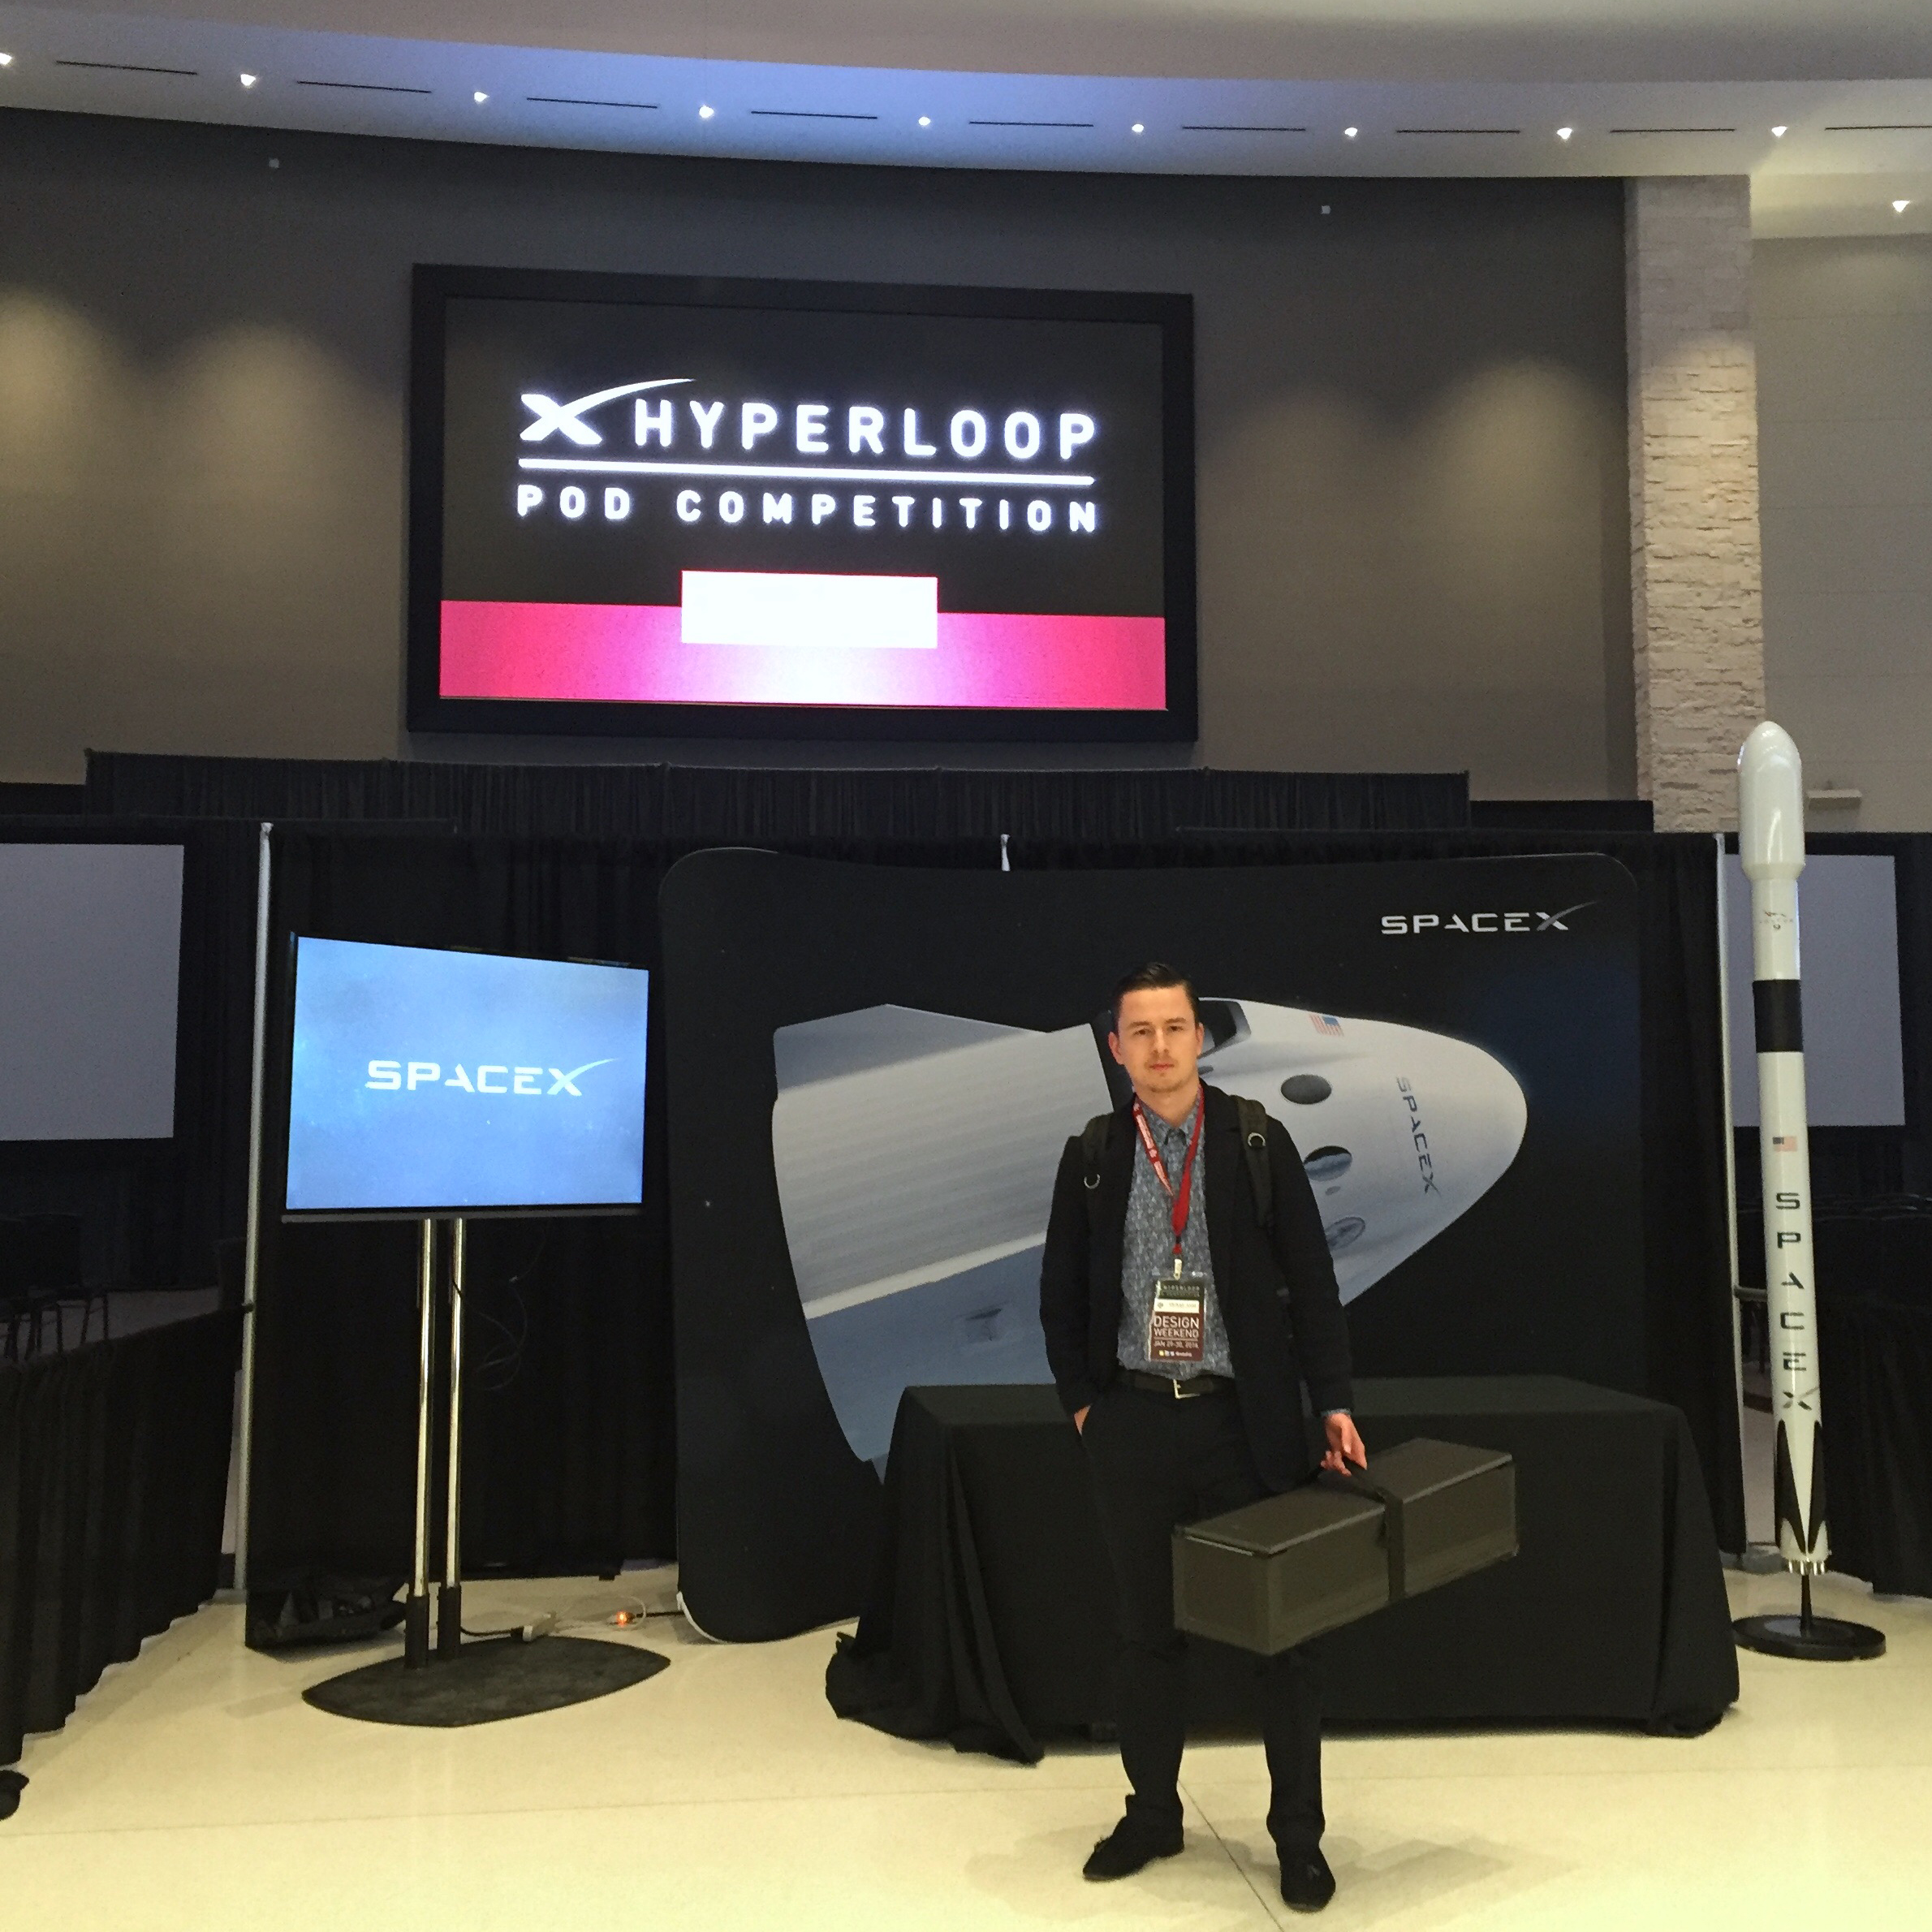 rustem baishev_rb systems spaceX hyperloop pod competition.jpg